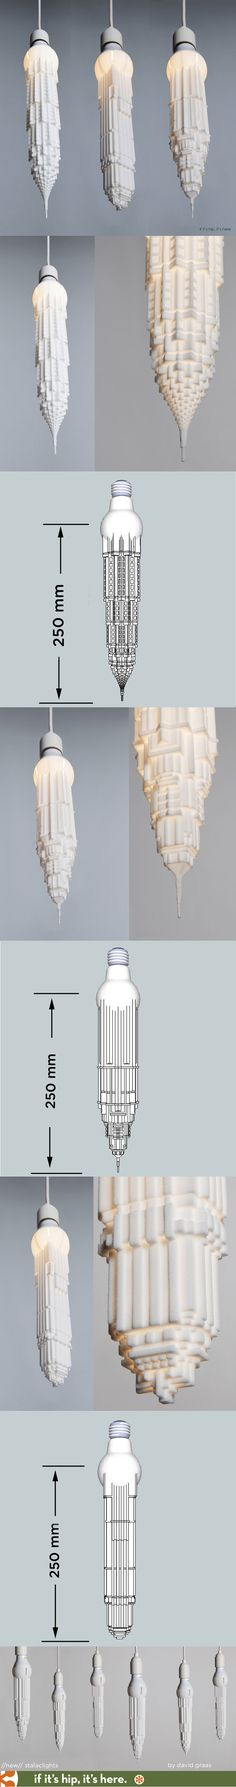 Stalaclights - 3D printed Upside Down Art Deco Skyscrapers on LED Bulbs make for awesome pendant lights.